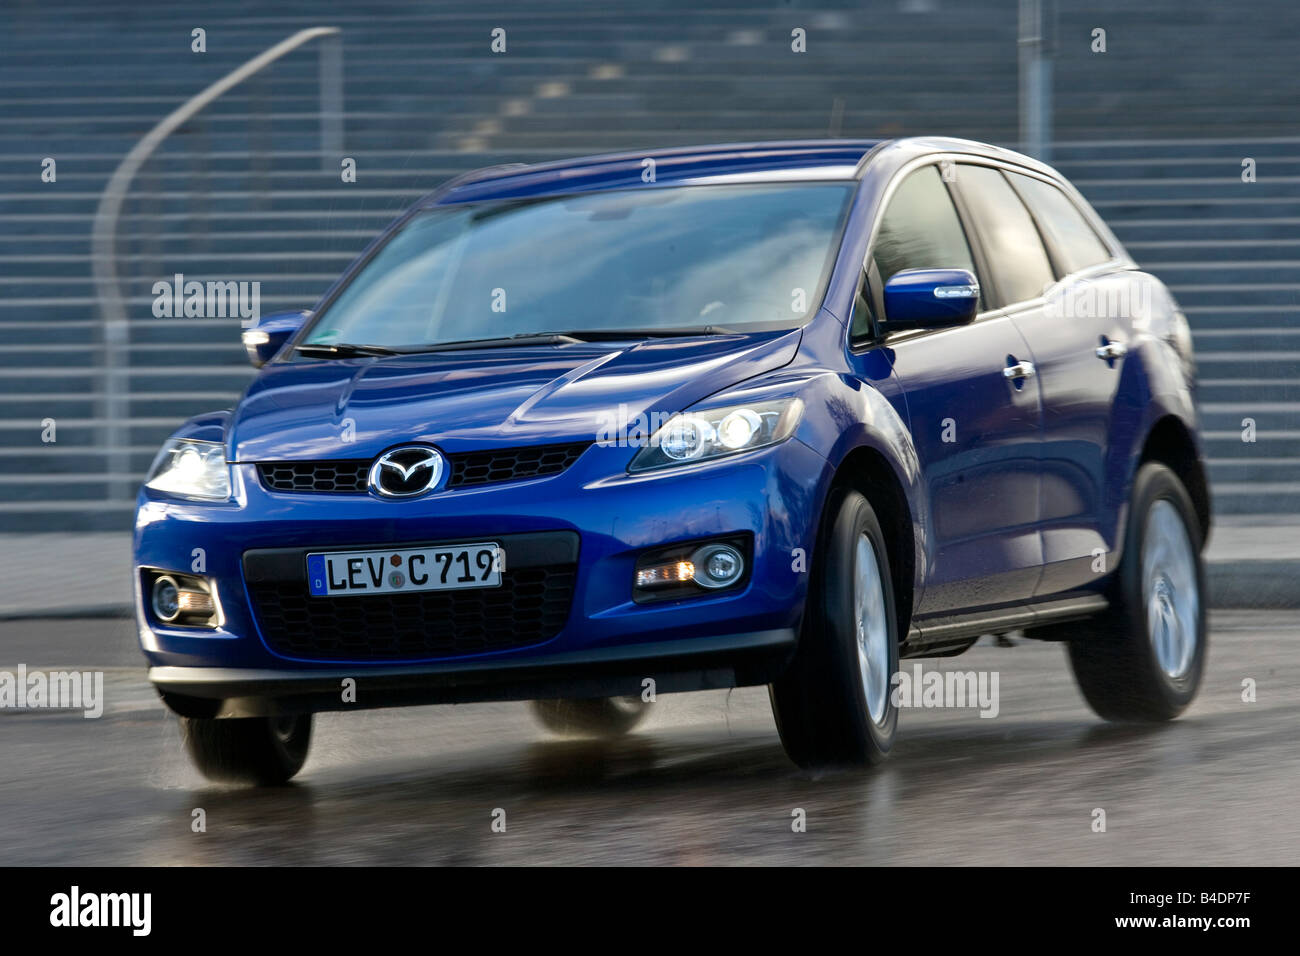 Mazda CX-7 2.3 MZR DISI Expression, model year 2006-, blue moving, diagonal from the front, frontal view, City - Stock Image